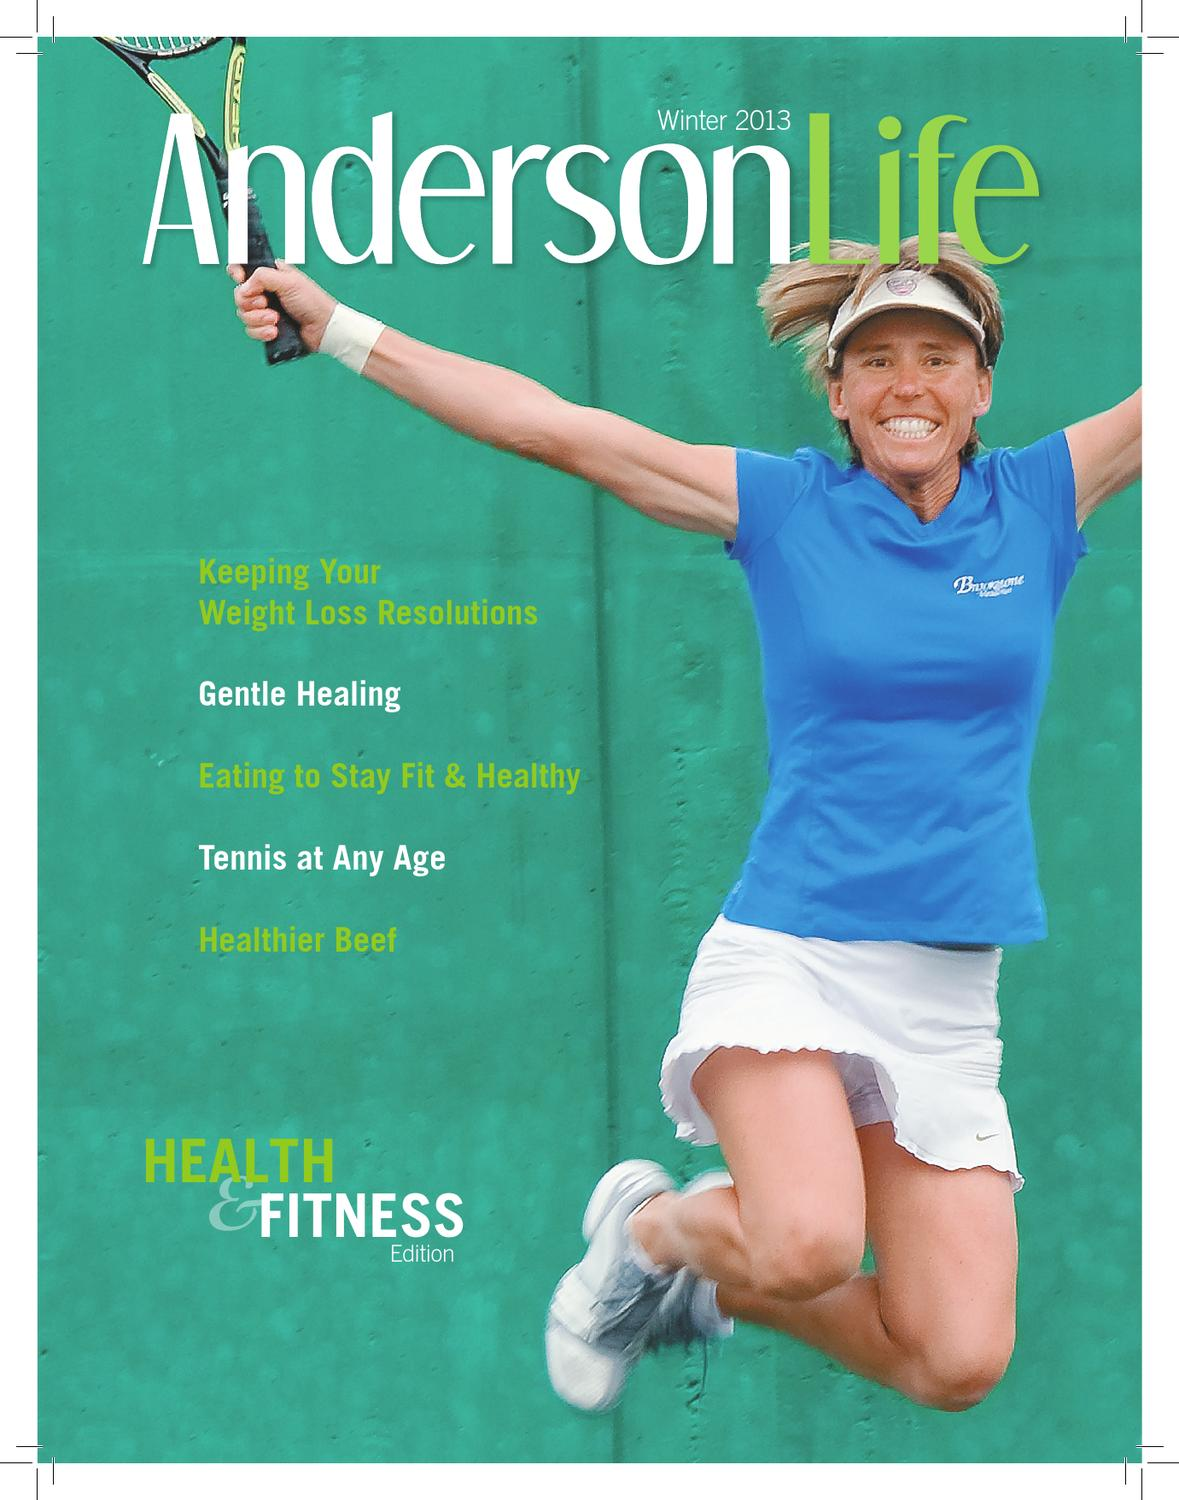 Anderson Life Winter 2013 by Sheril Turner - issuu